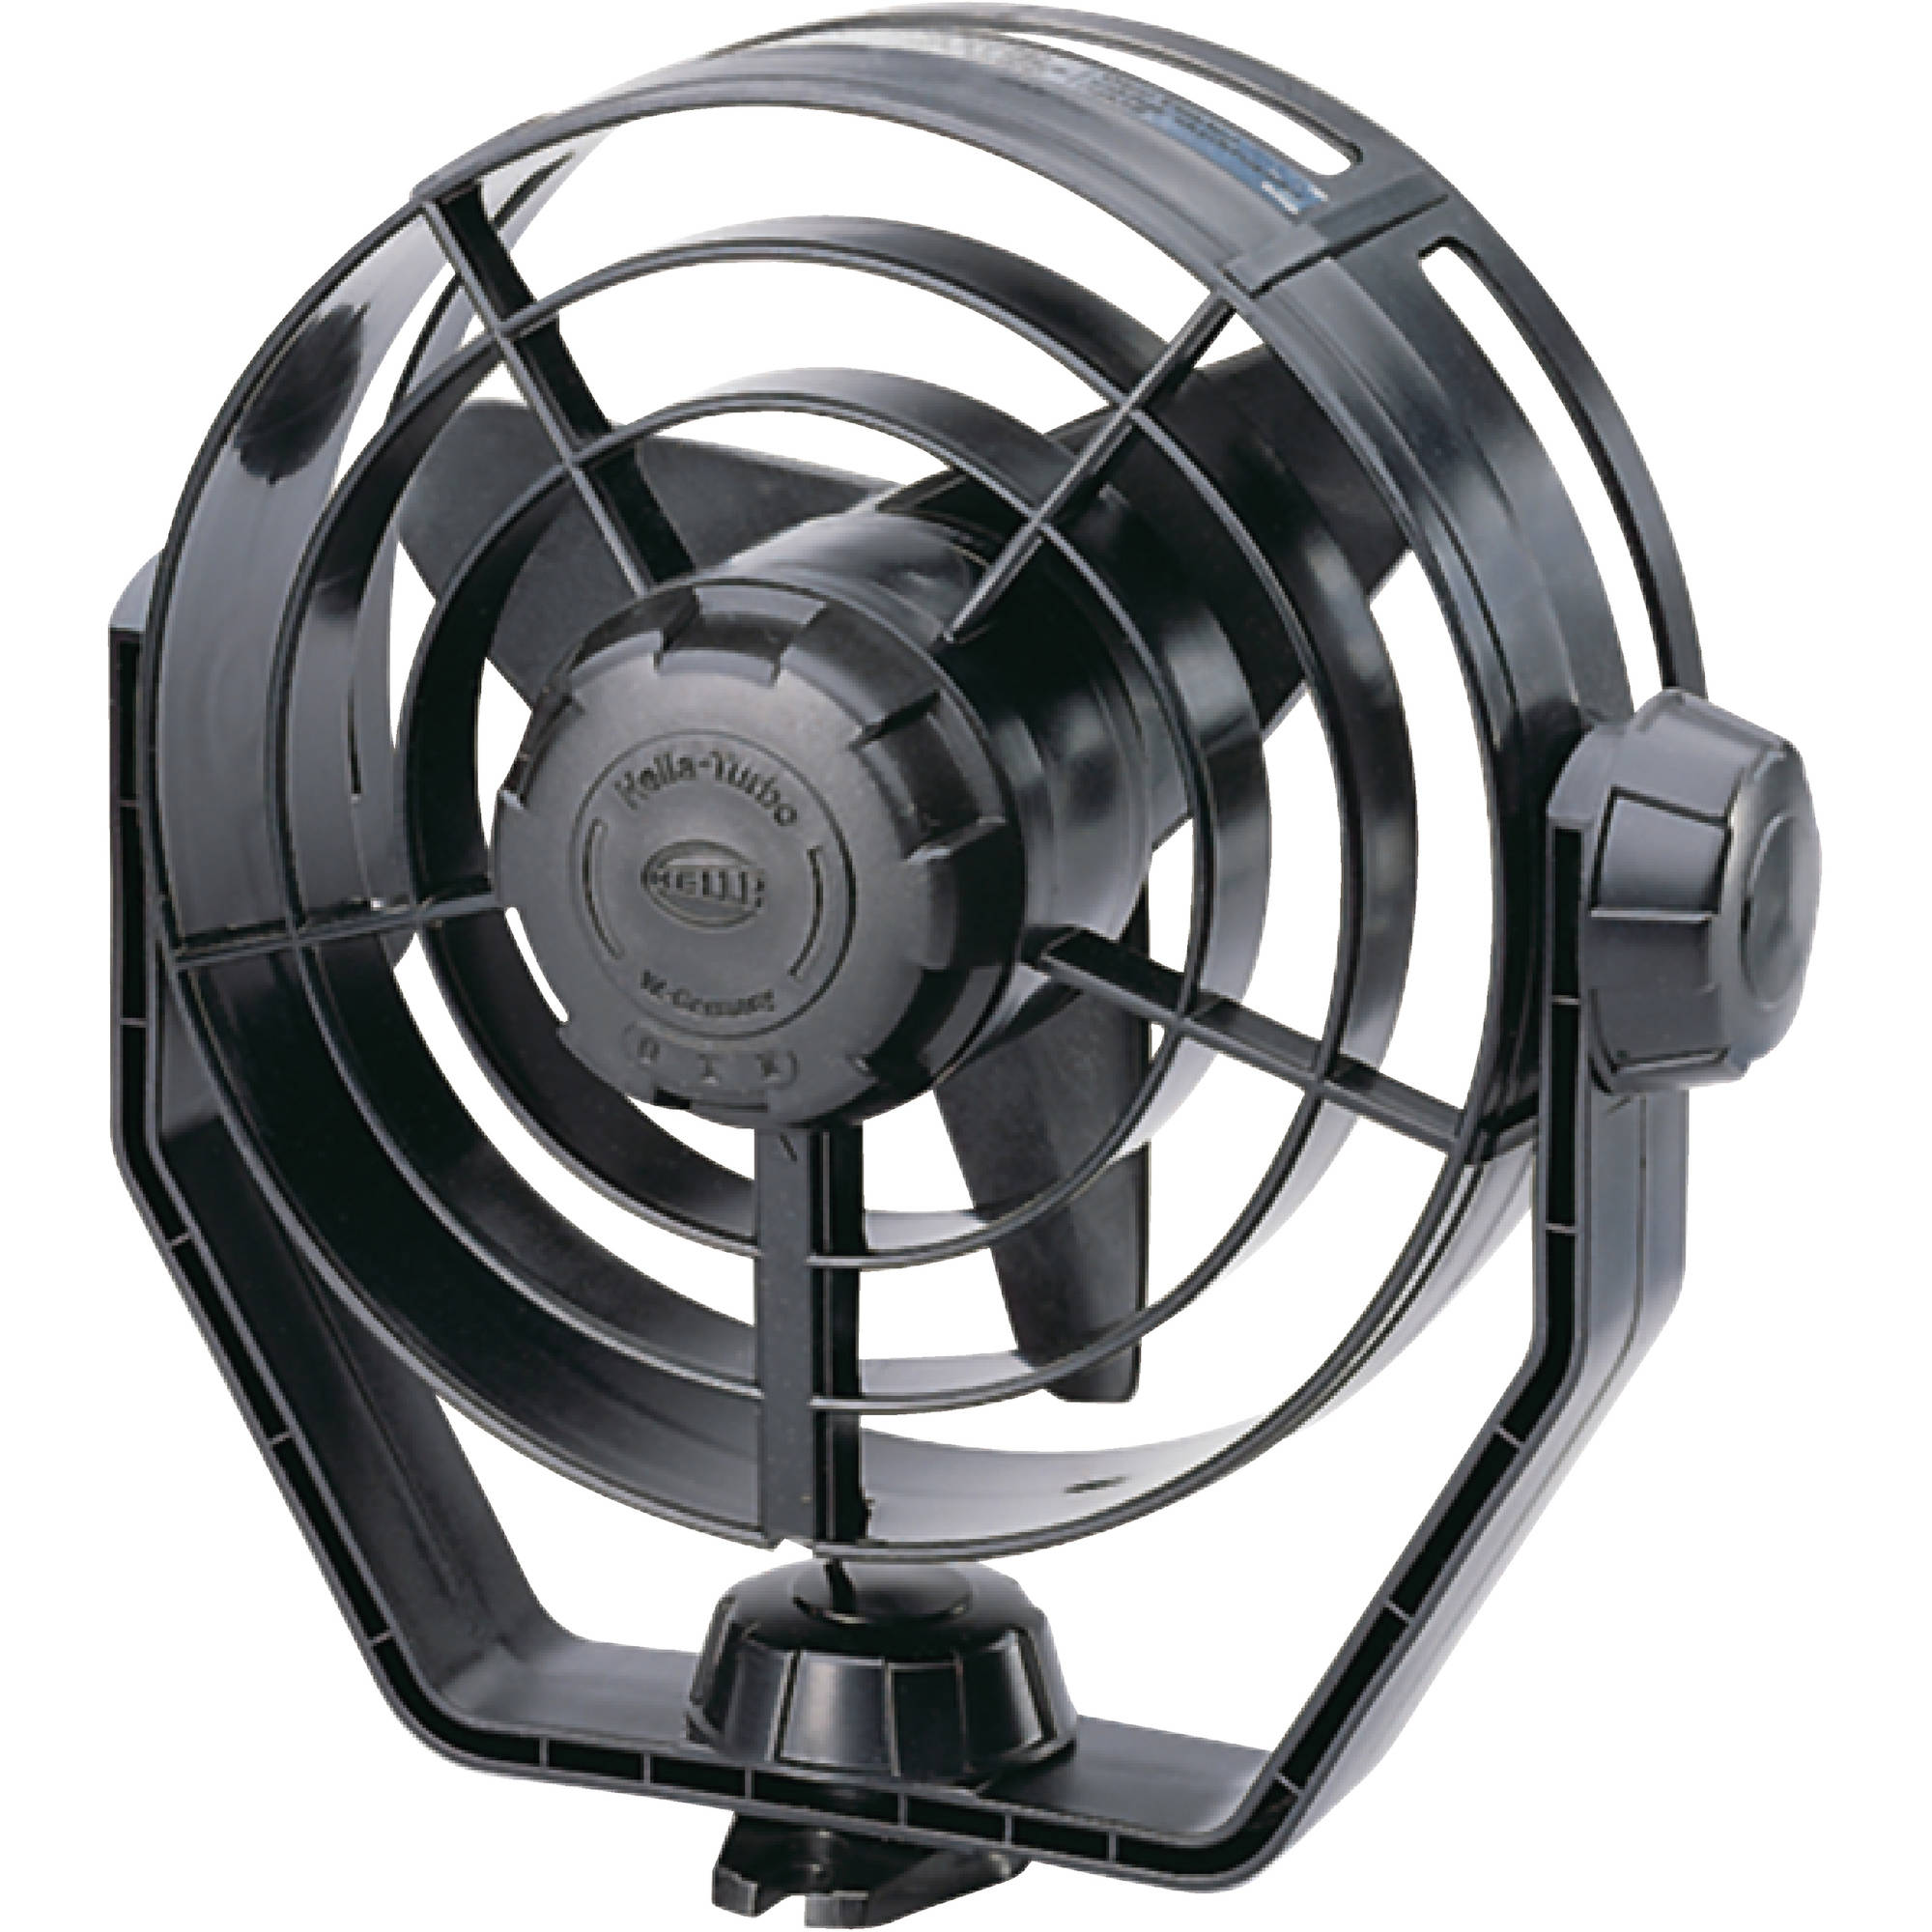 Hella Turbo Fan, 2 003361002